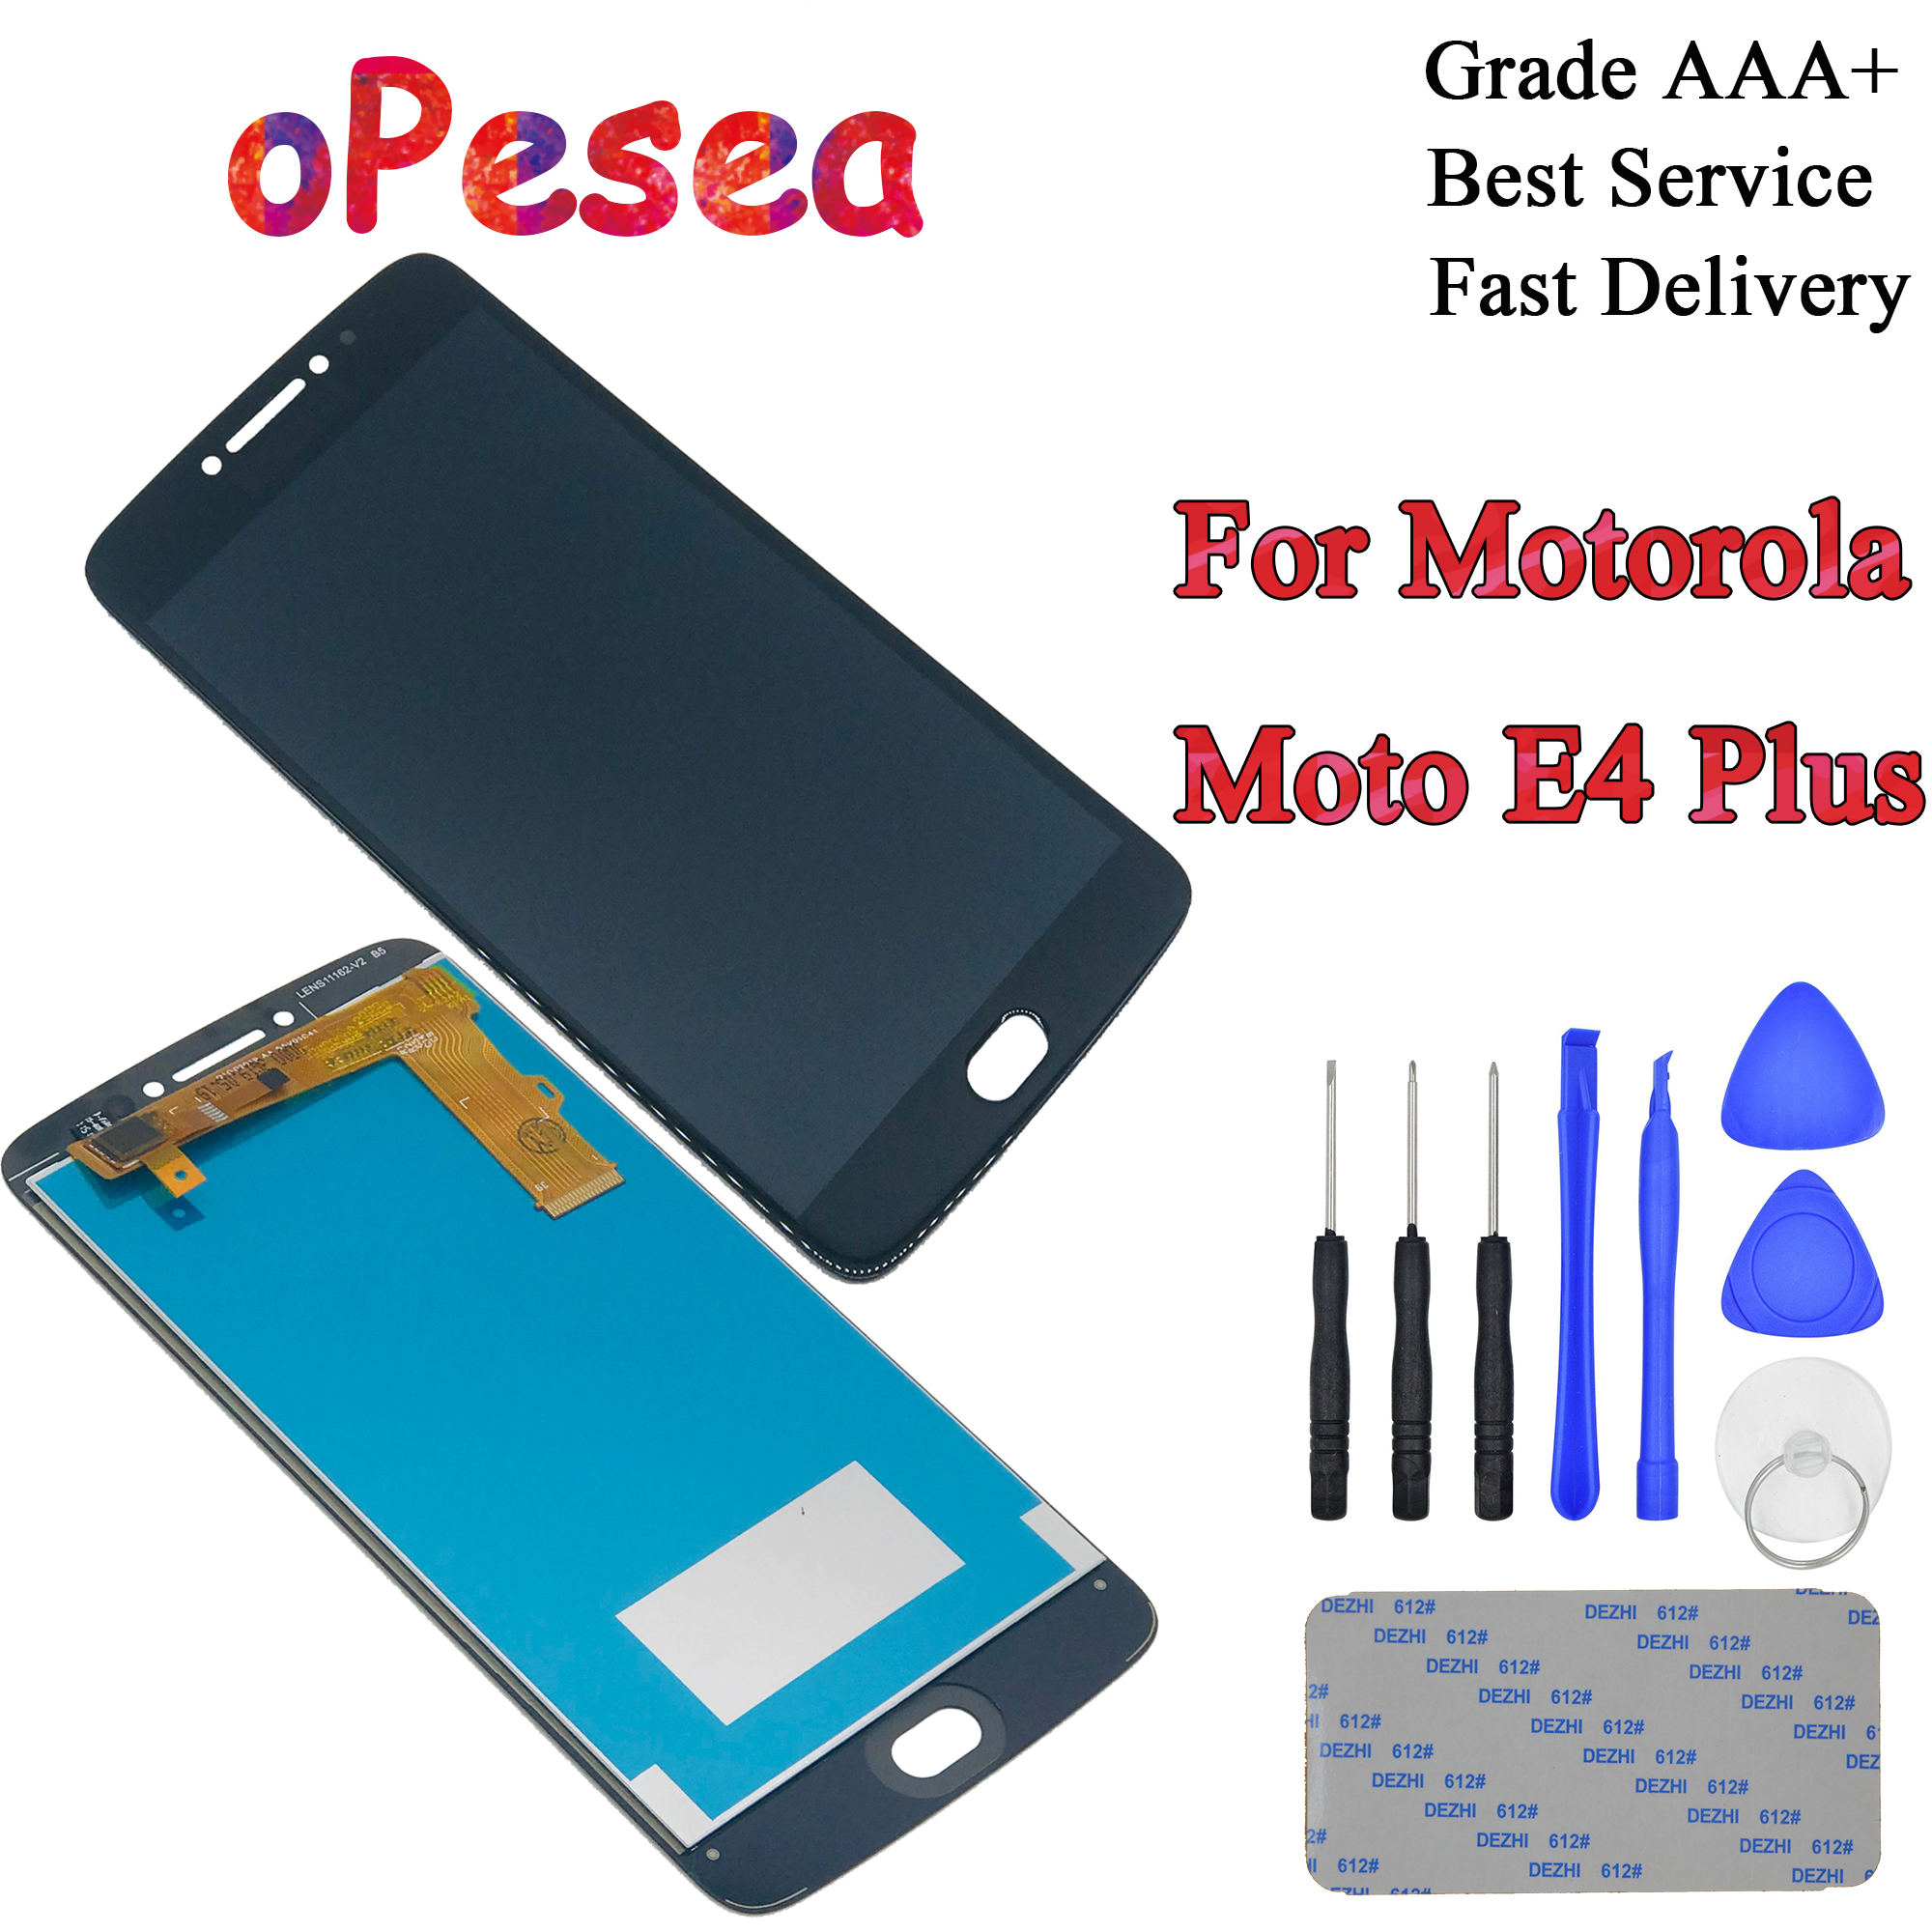 oPesea 5.5'' For Motorola <font><b>Moto</b></font> <font><b>E4</b></font> <font><b>Plus</b></font> XT1770 XT1771 <font><b>XT1772</b></font> XT1773 LCD Display Panel Touch Screen Digitizer Assembly image